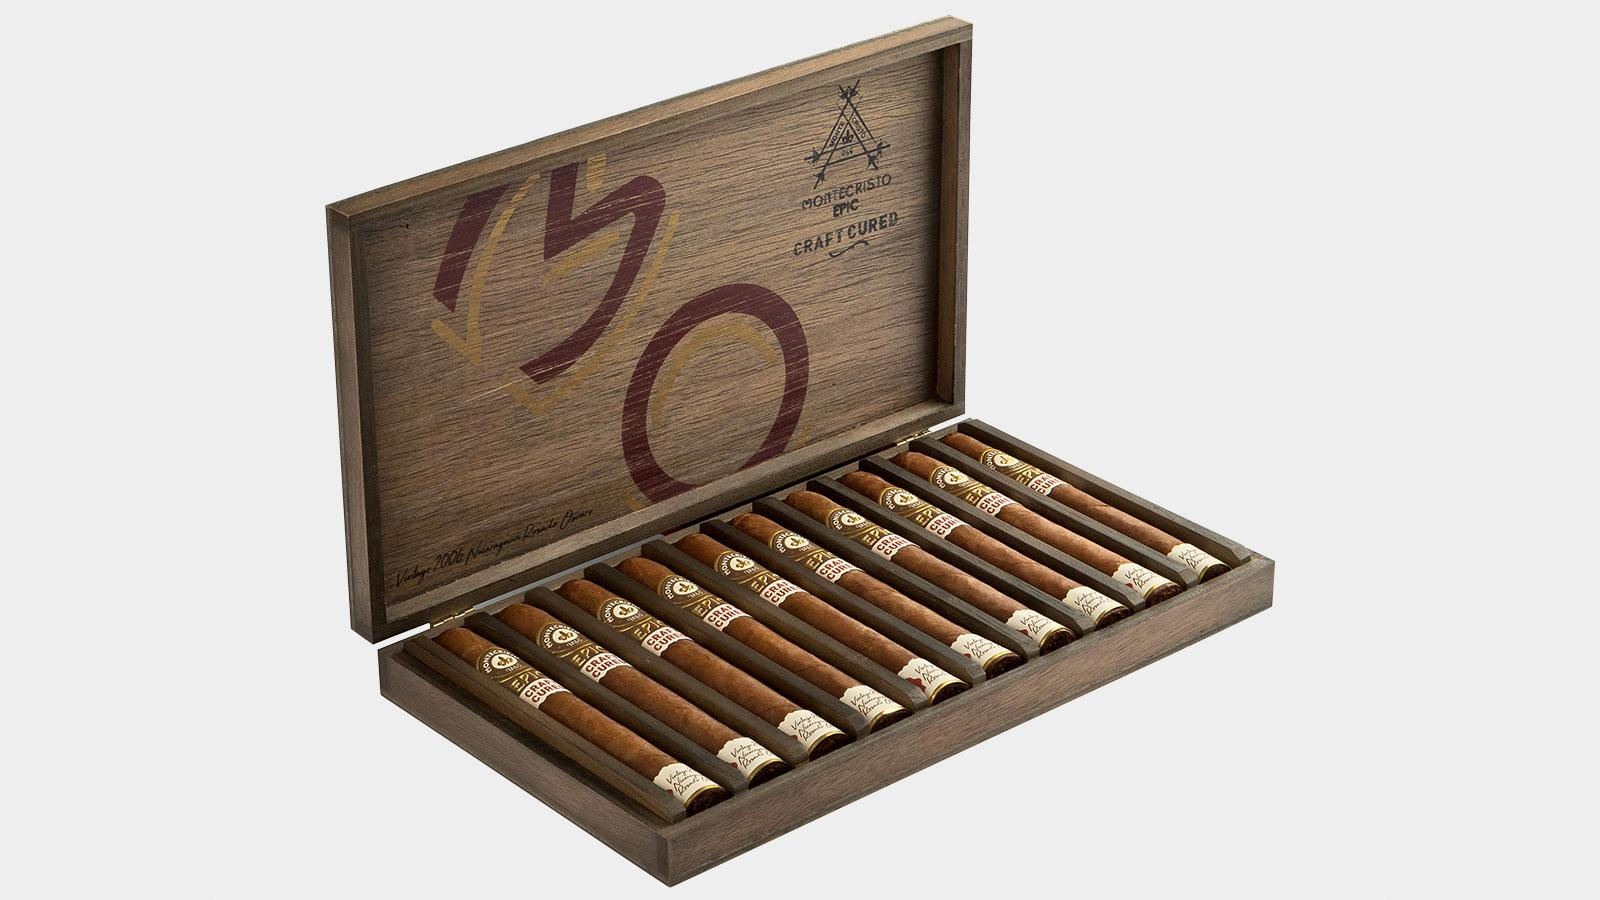 New Montecristo Craft Cured Wears 11-Year-Old Wrapper